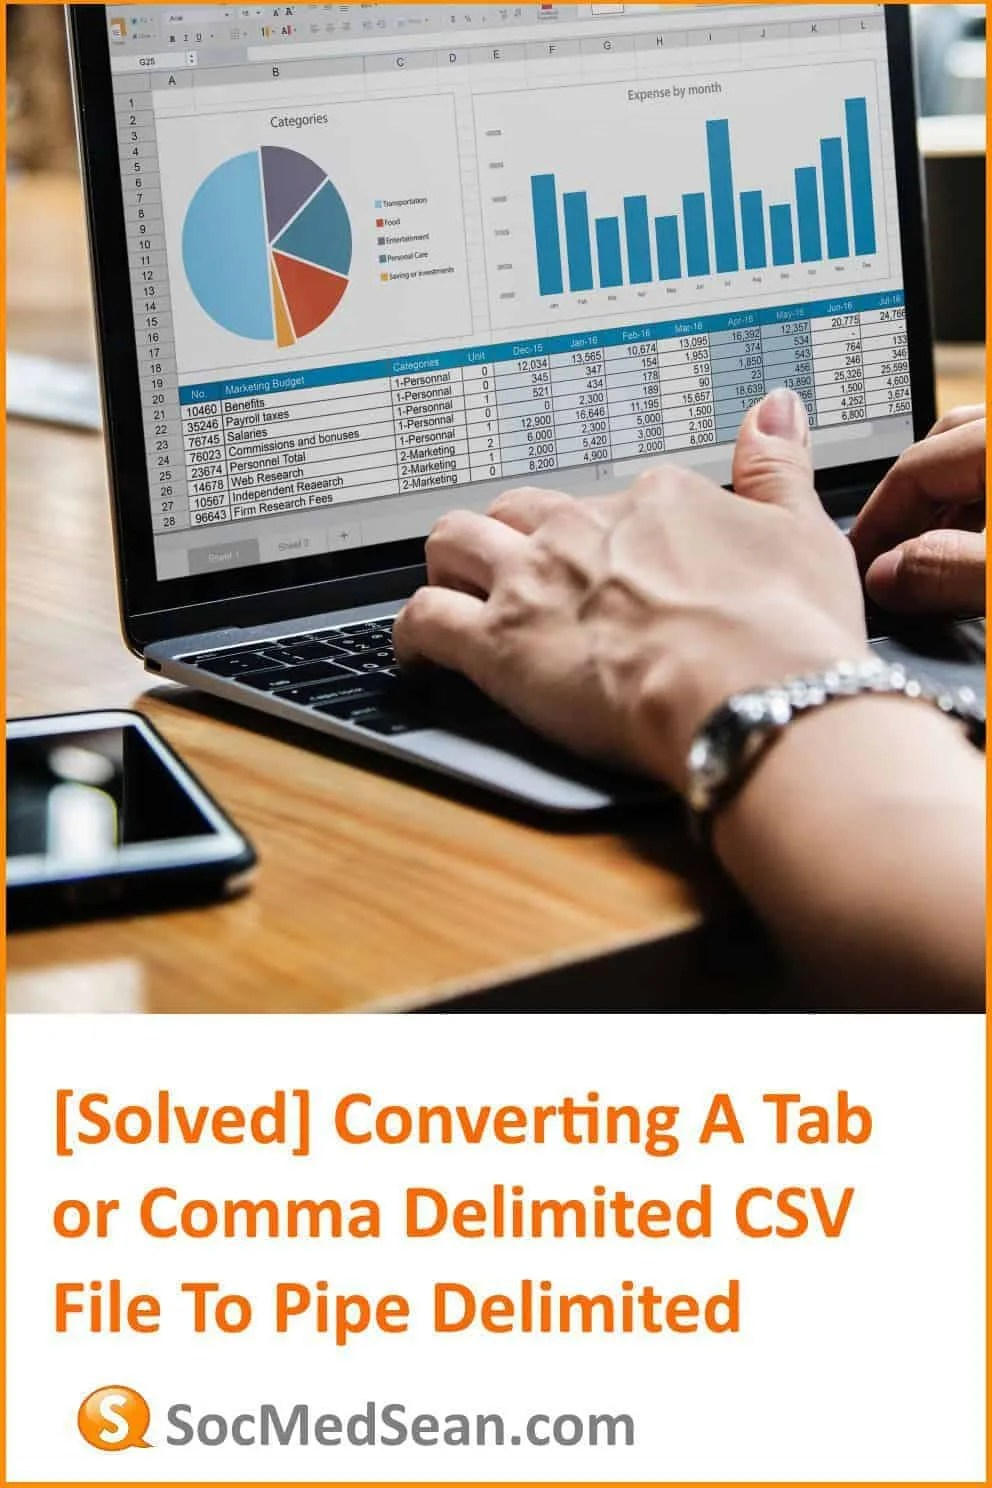 Steps to convert a comma or tab delimited excel spreadsheet or csv file to a tab delimited format